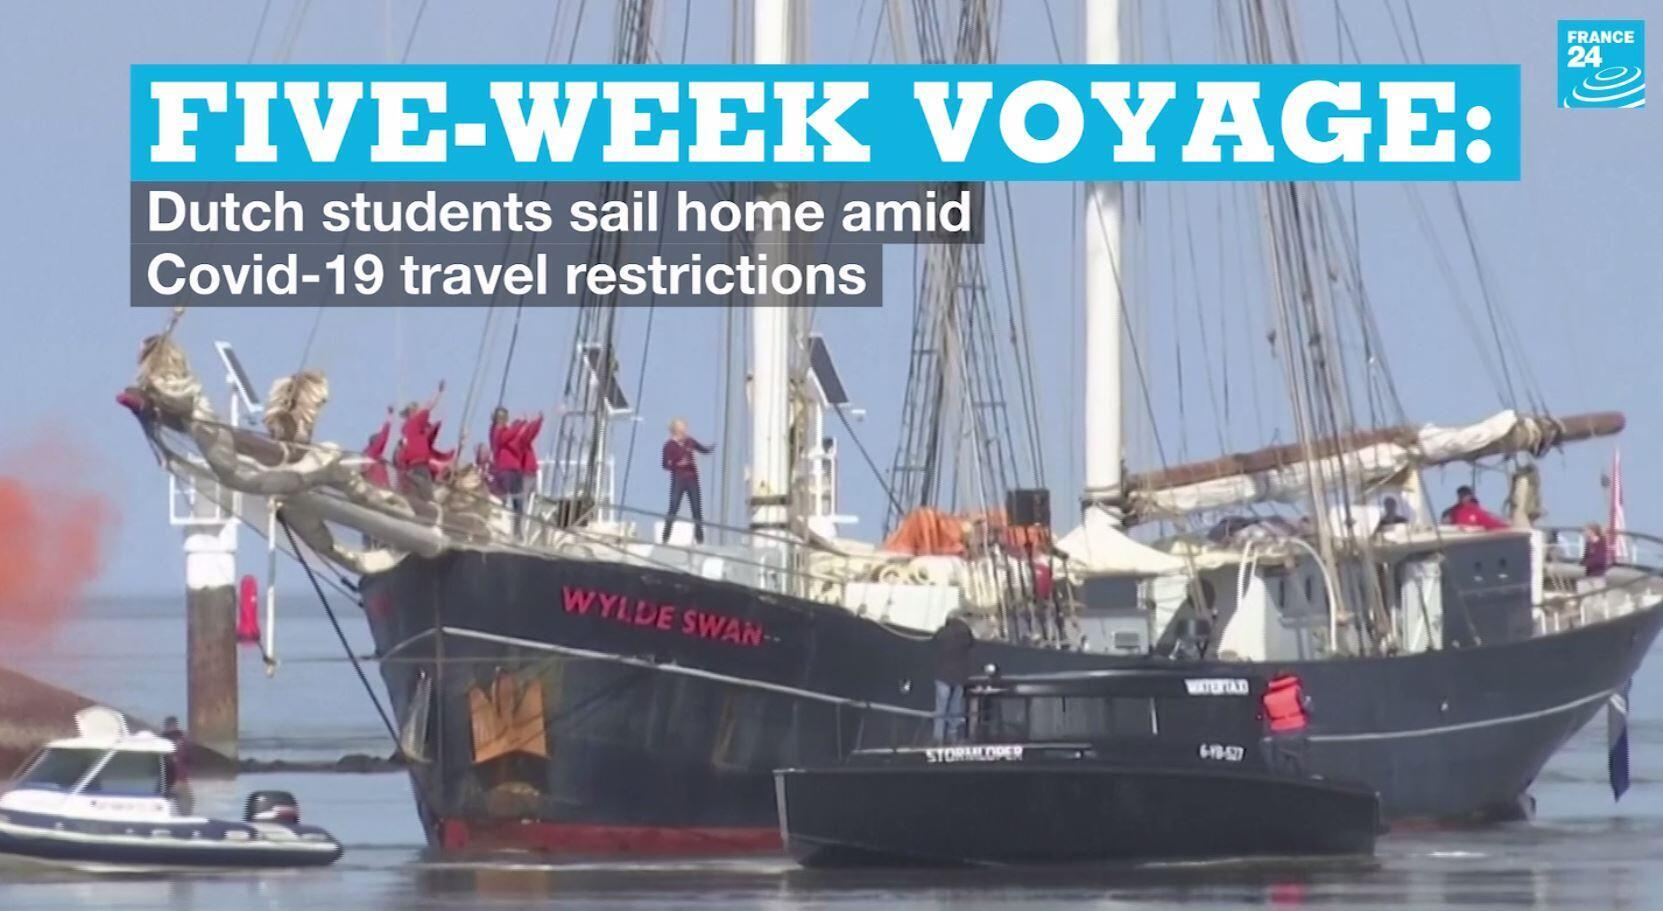 A group of Dutch students arrive in the Netherlands onboard the Wyld Swan on Sunday, April 26, 2020.